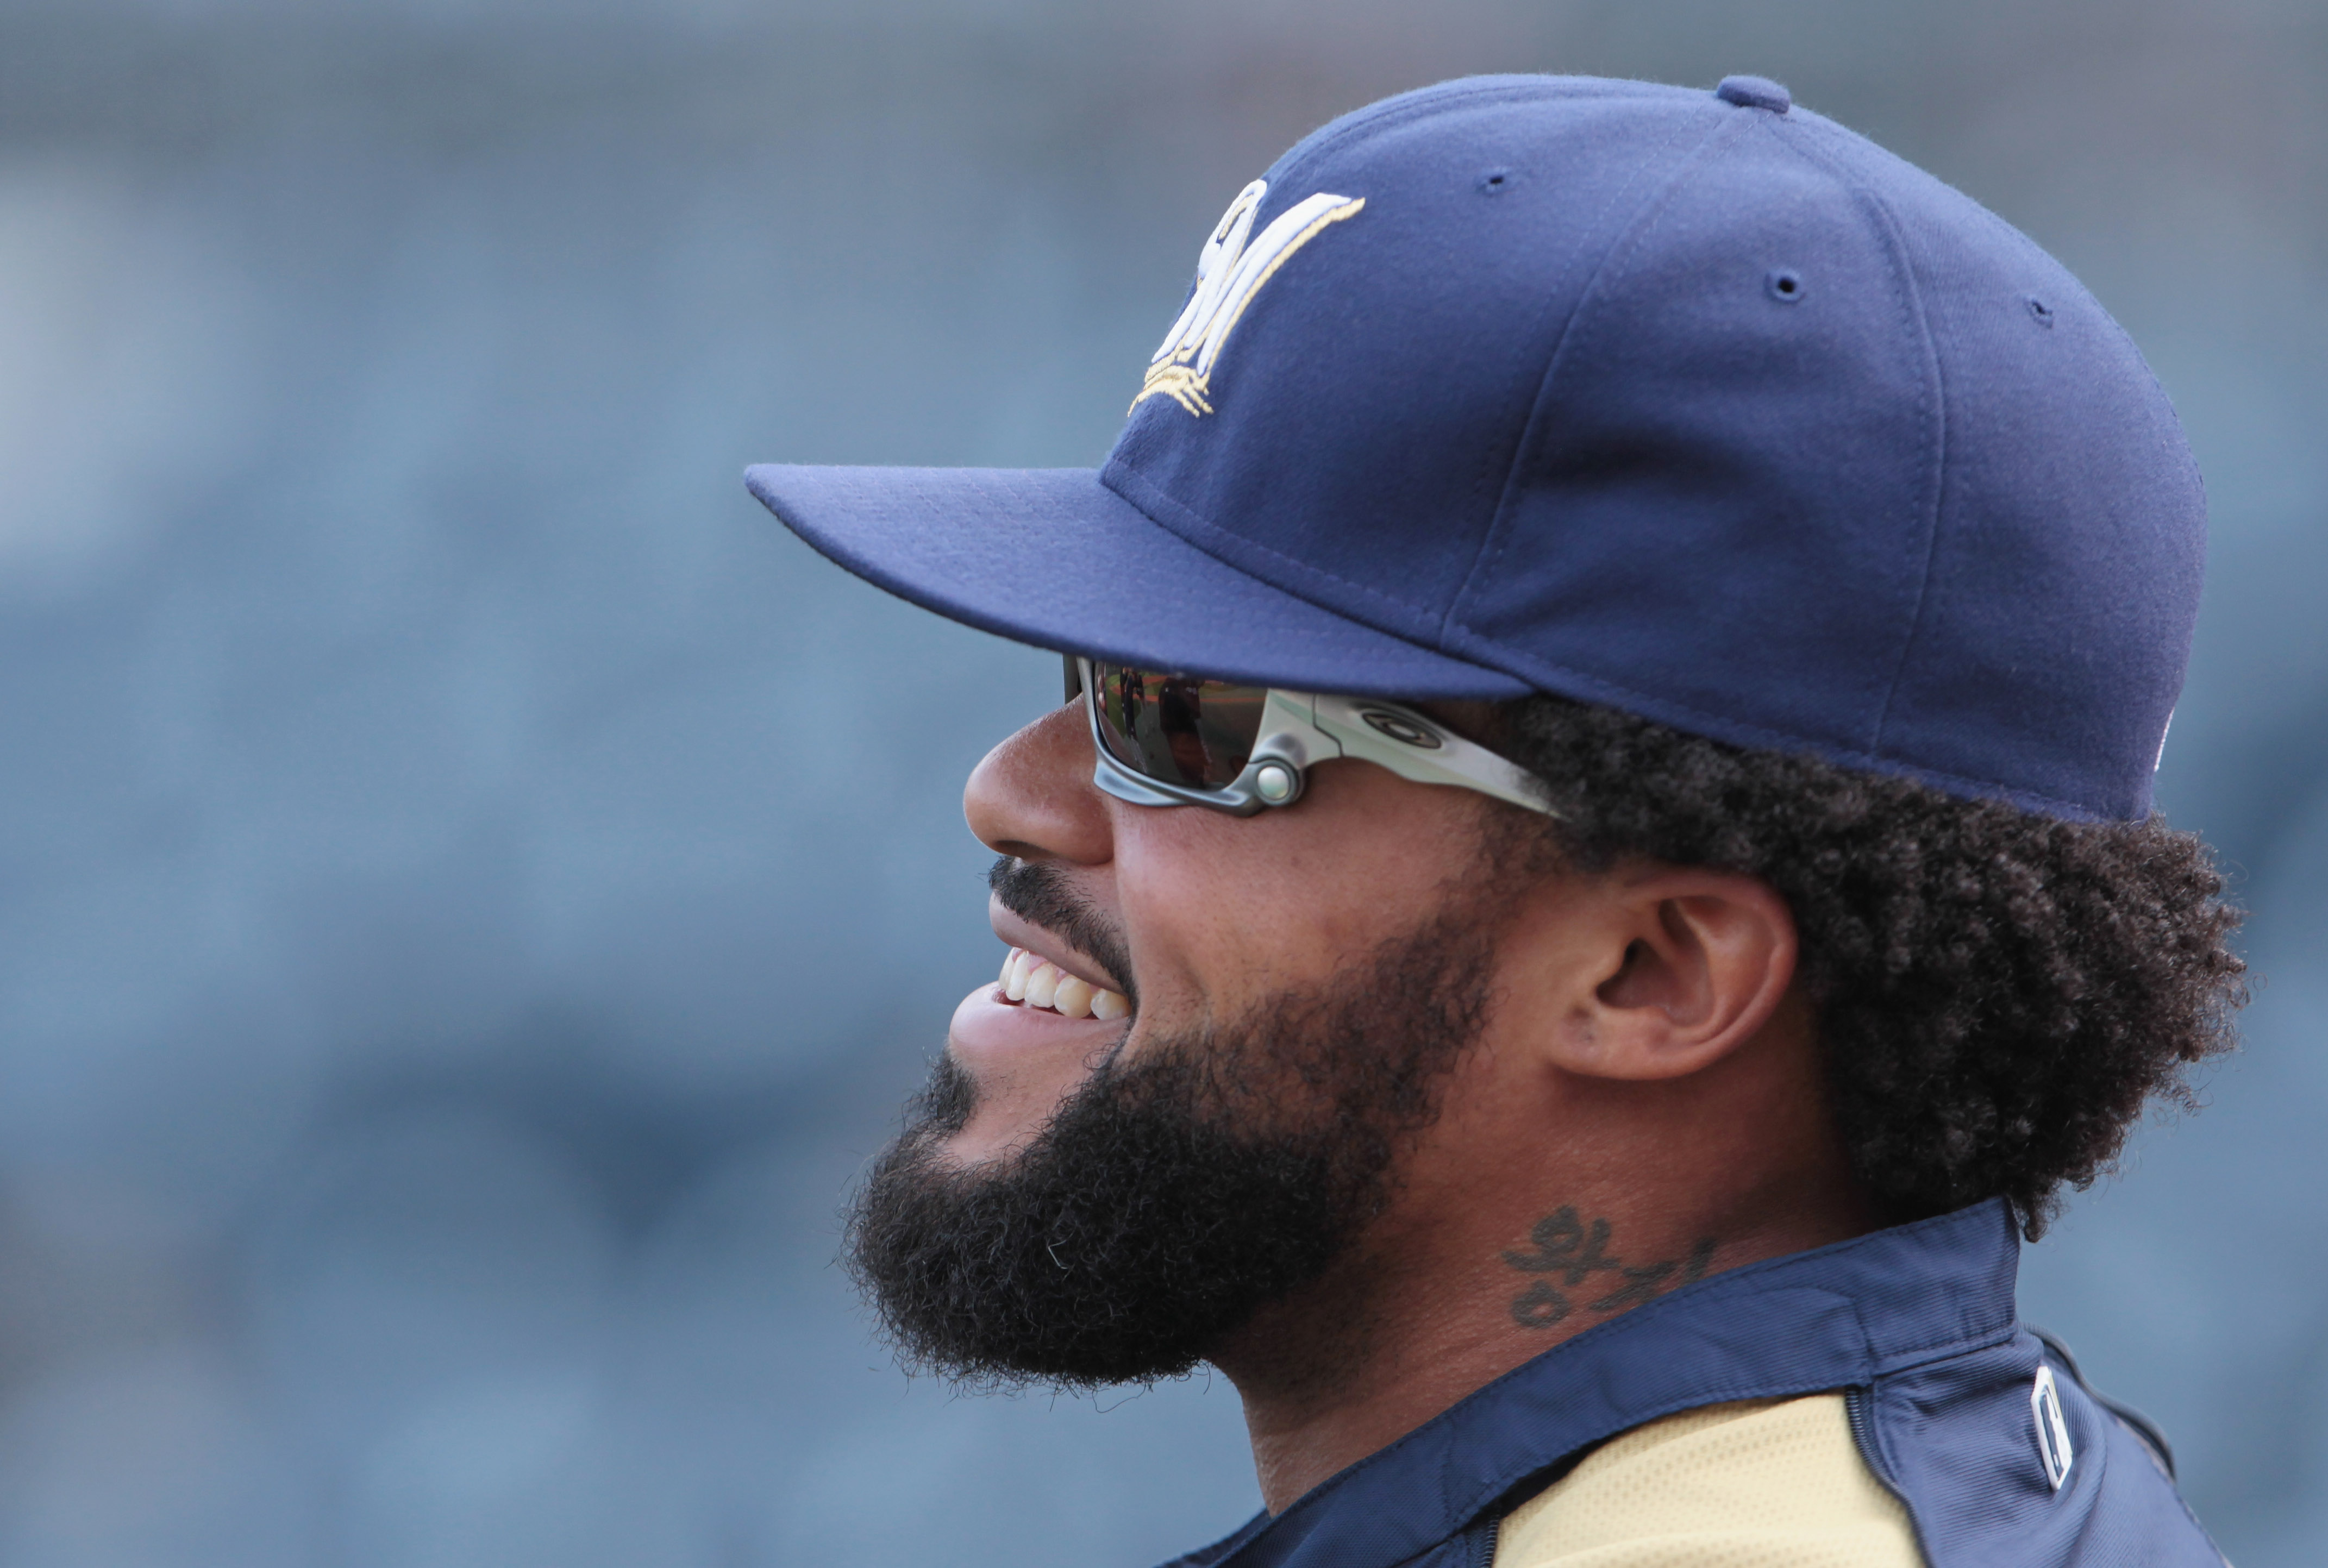 PITTSBURGH, PA - APRIL 14:  Prince Fielder #28 of the Milwaukee Brewers waits on the field before the start of their game against the Pittsburgh Pirates at PNC Park on April 14, 2011 in Pittsburgh, Pennsylvania.  (Photo by Scott Halleran/Getty Images)